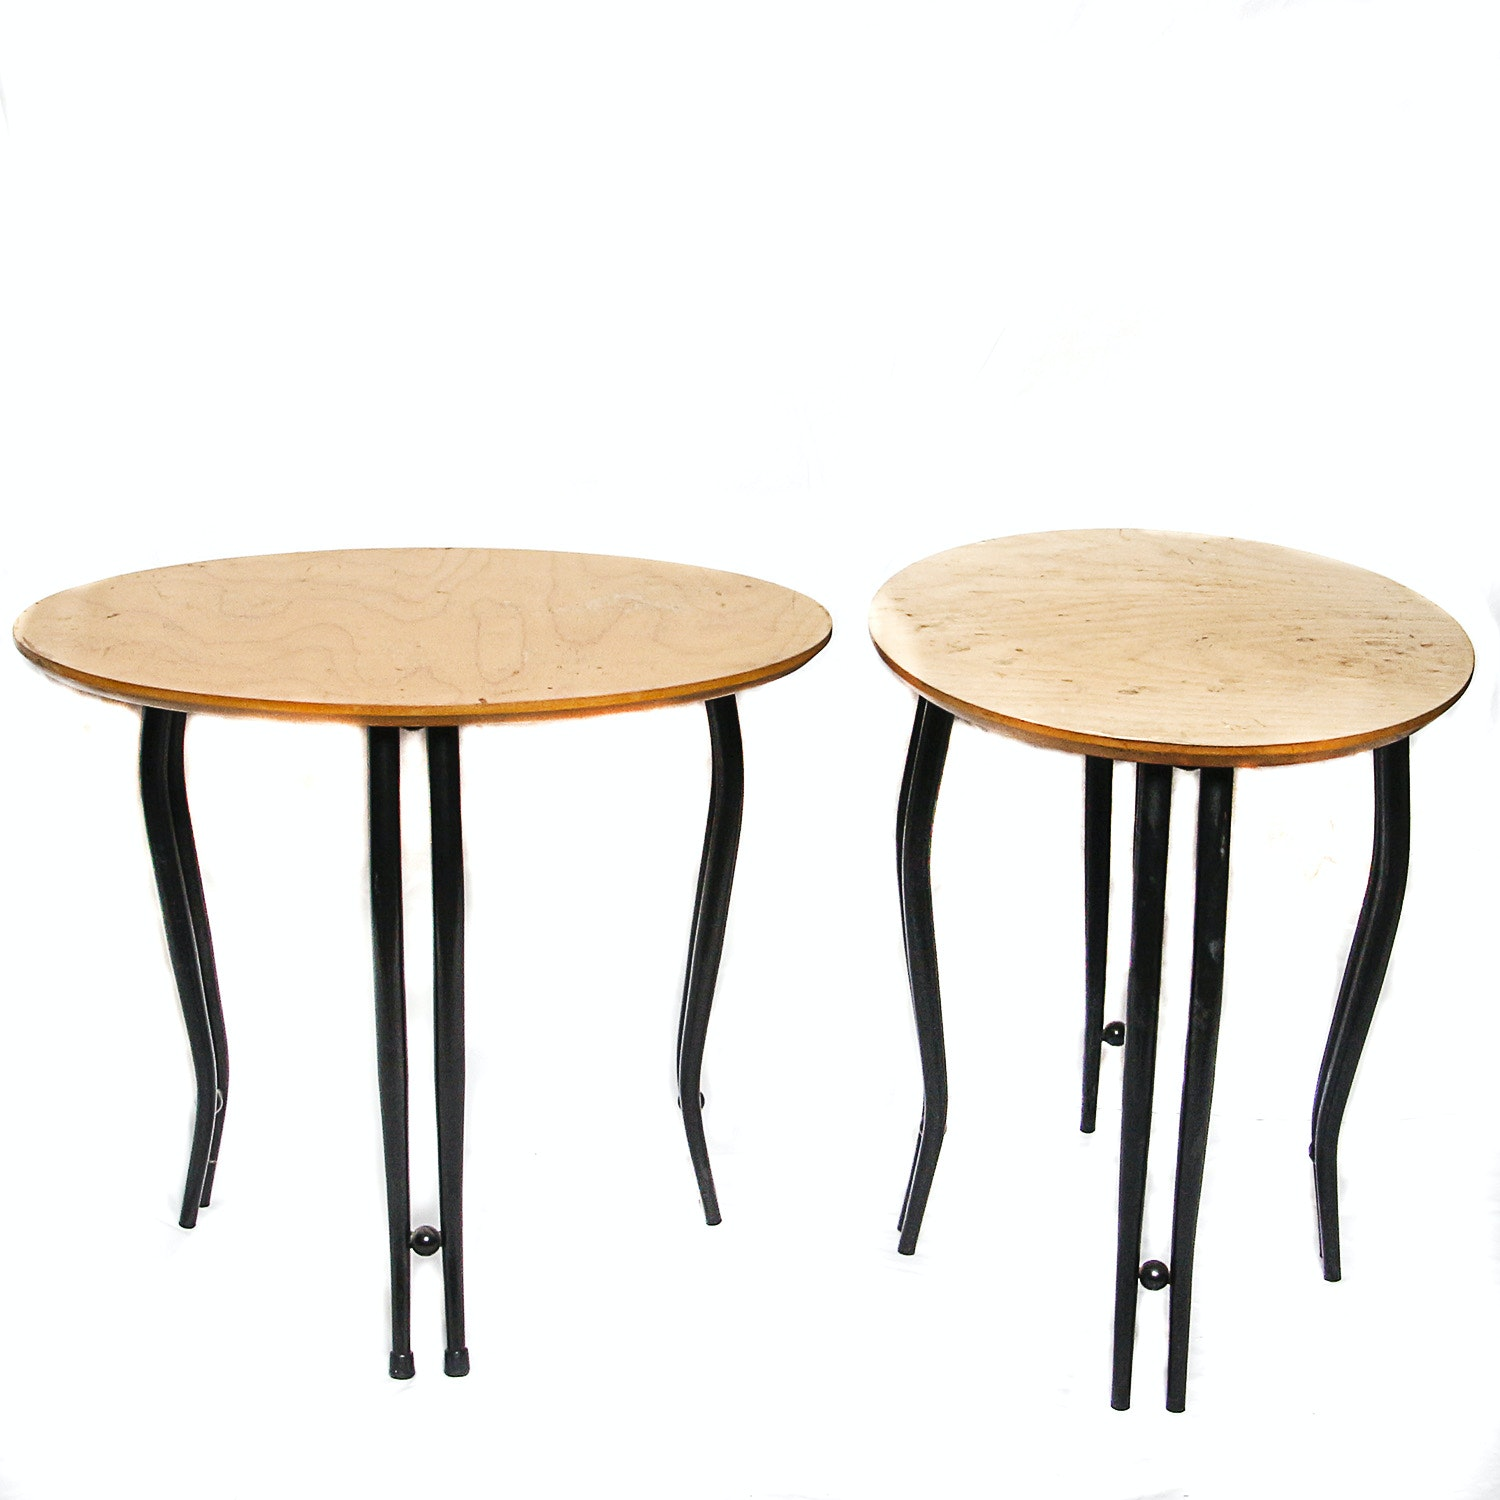 Contemporary Birch Wood and Metal Accent Tables